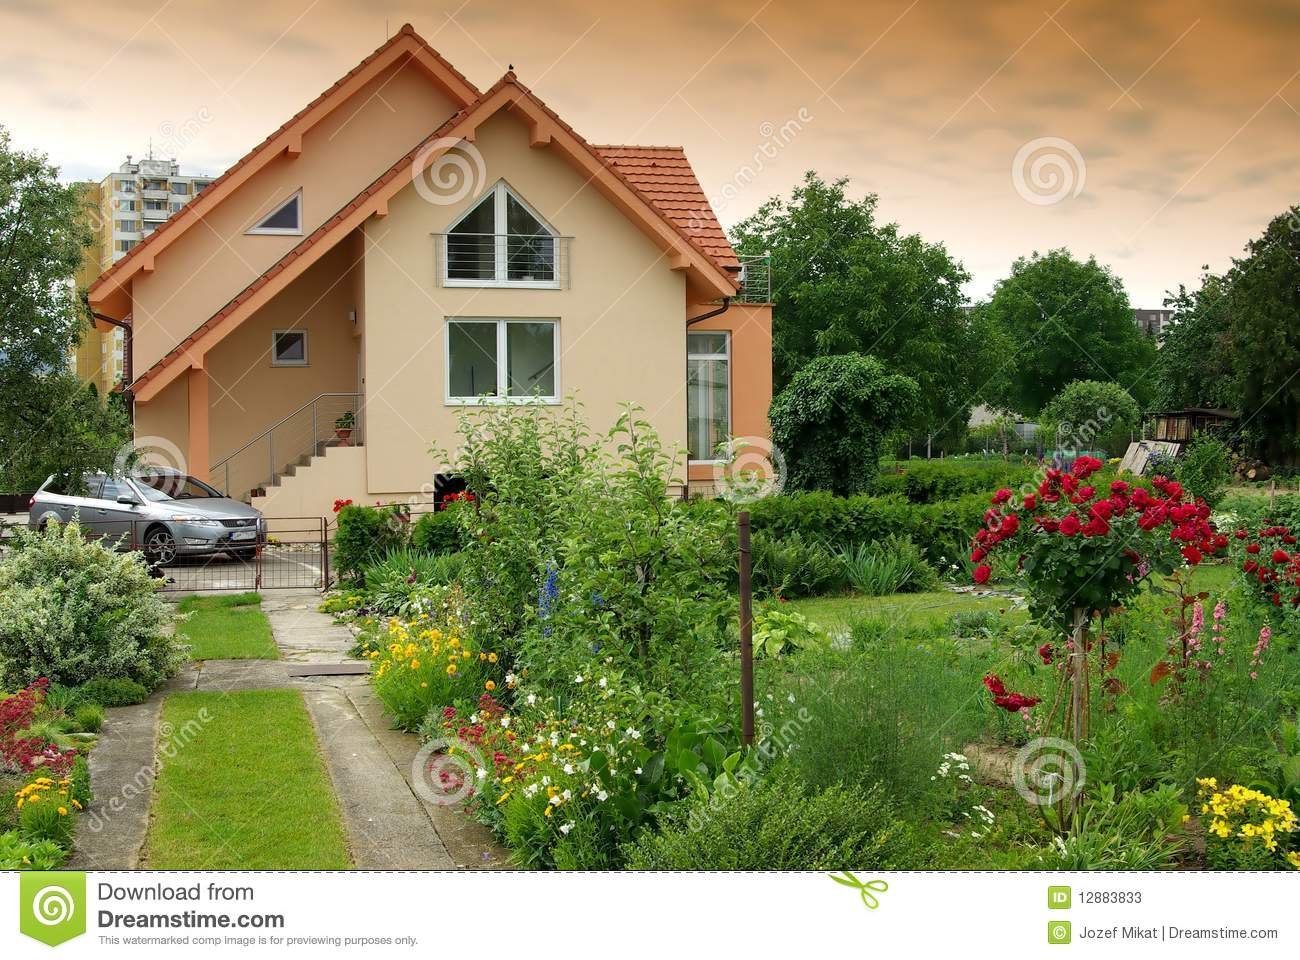 Nice house with the garden stock photos image 12883833 for Nice house images